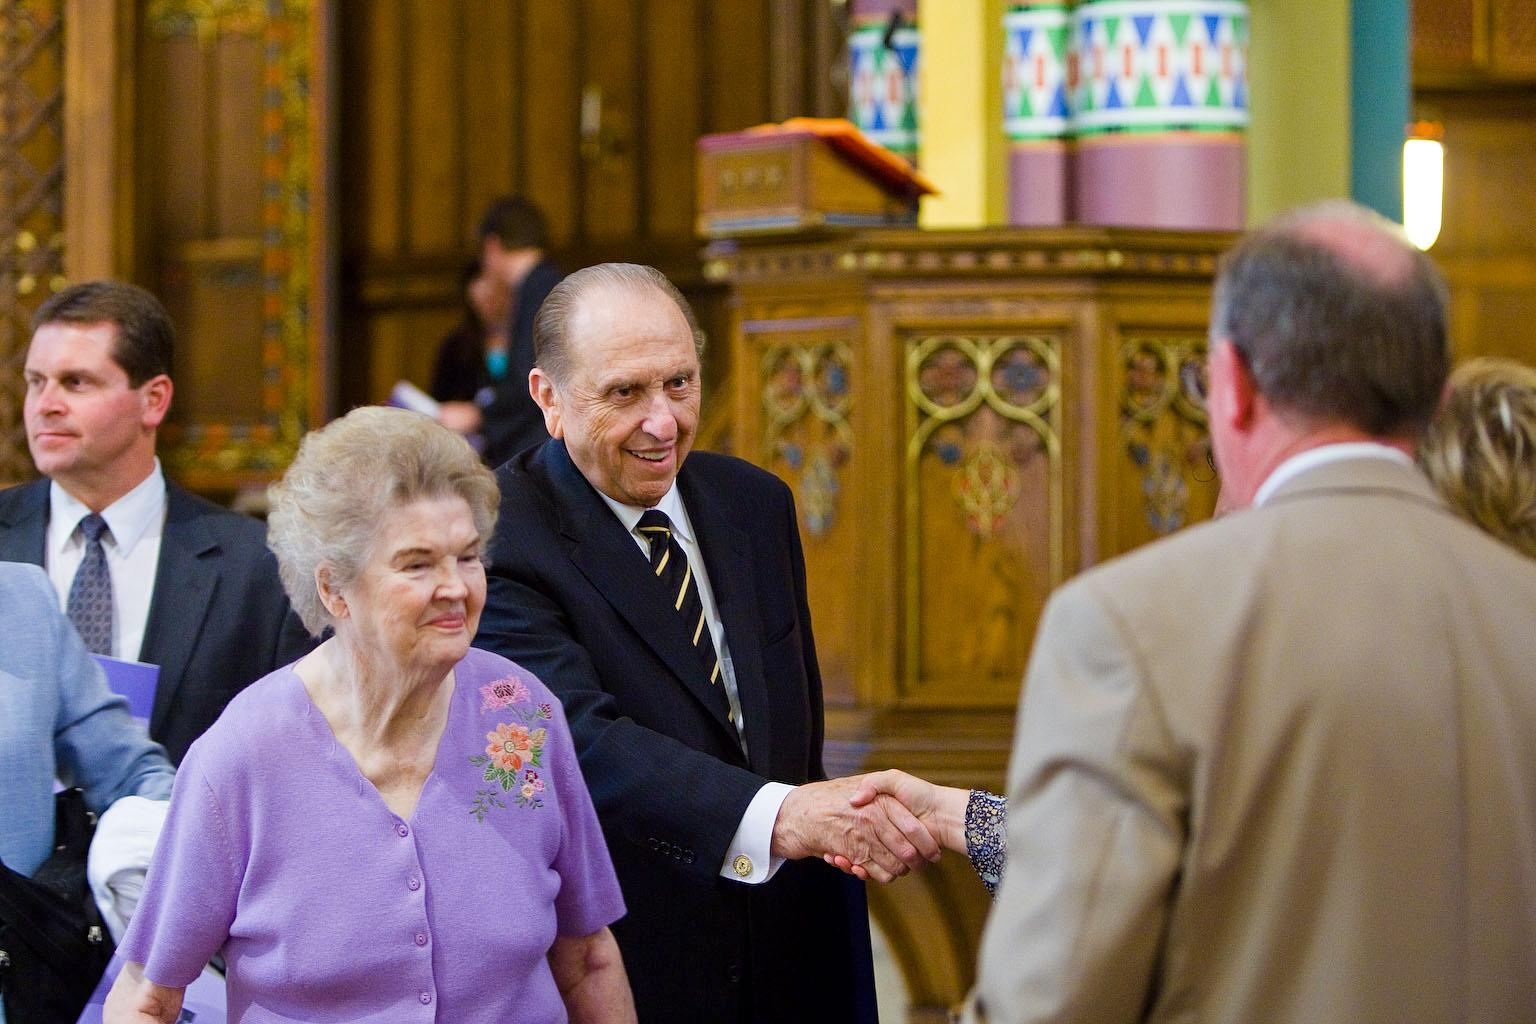 President Thomas S. Monson and his wife, Frances, greet visitors at the Cathedral of the Madeleine in August 2009. (Photo: MormonNewsroom.org)<p></p>